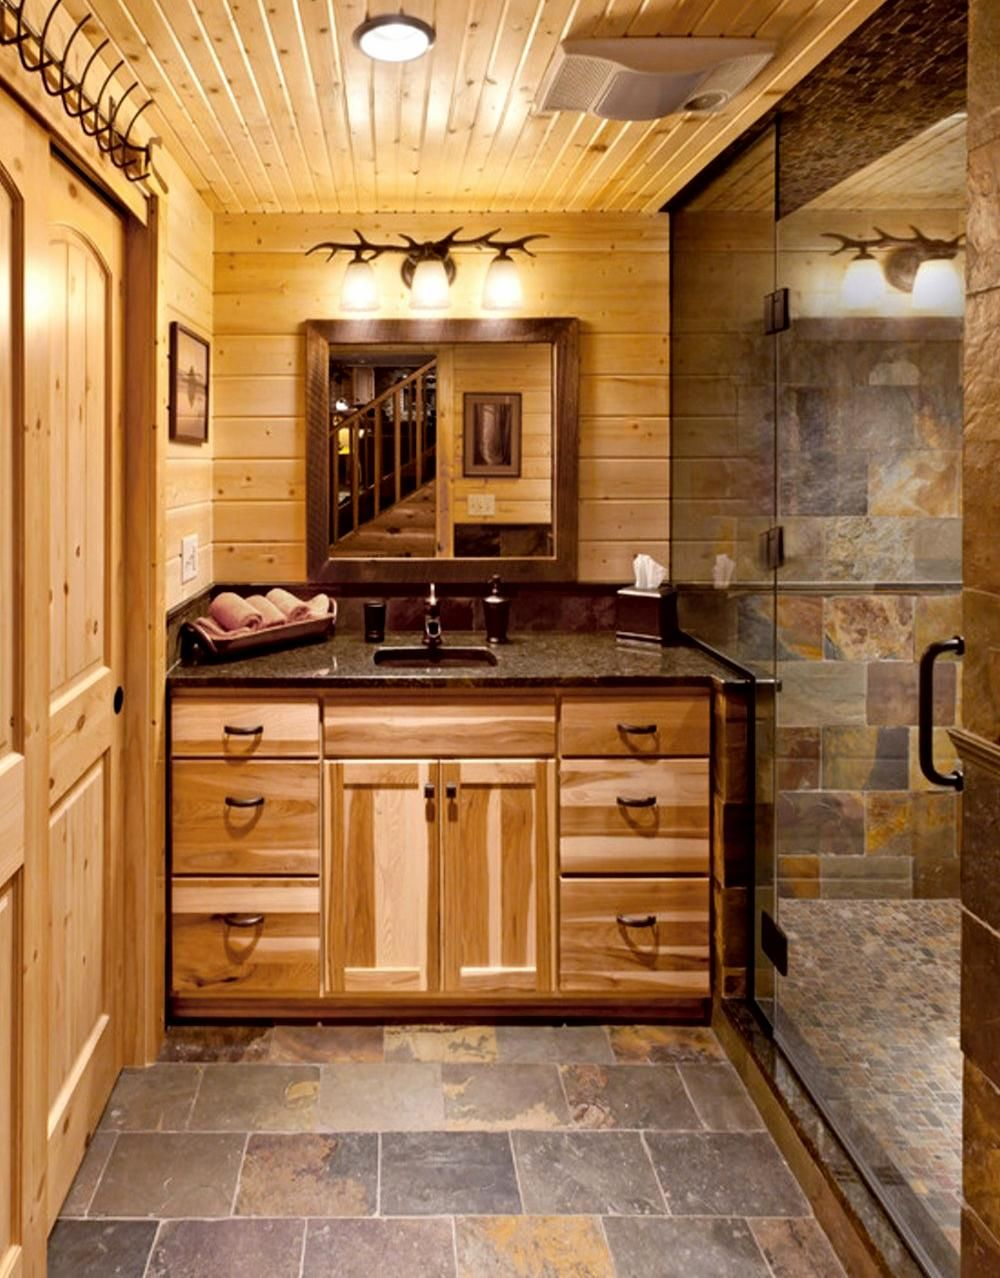 Installing Slate Tiles In Bathrooms Log Home Bathrooms Log Cabin Bathrooms Cabin Bathrooms